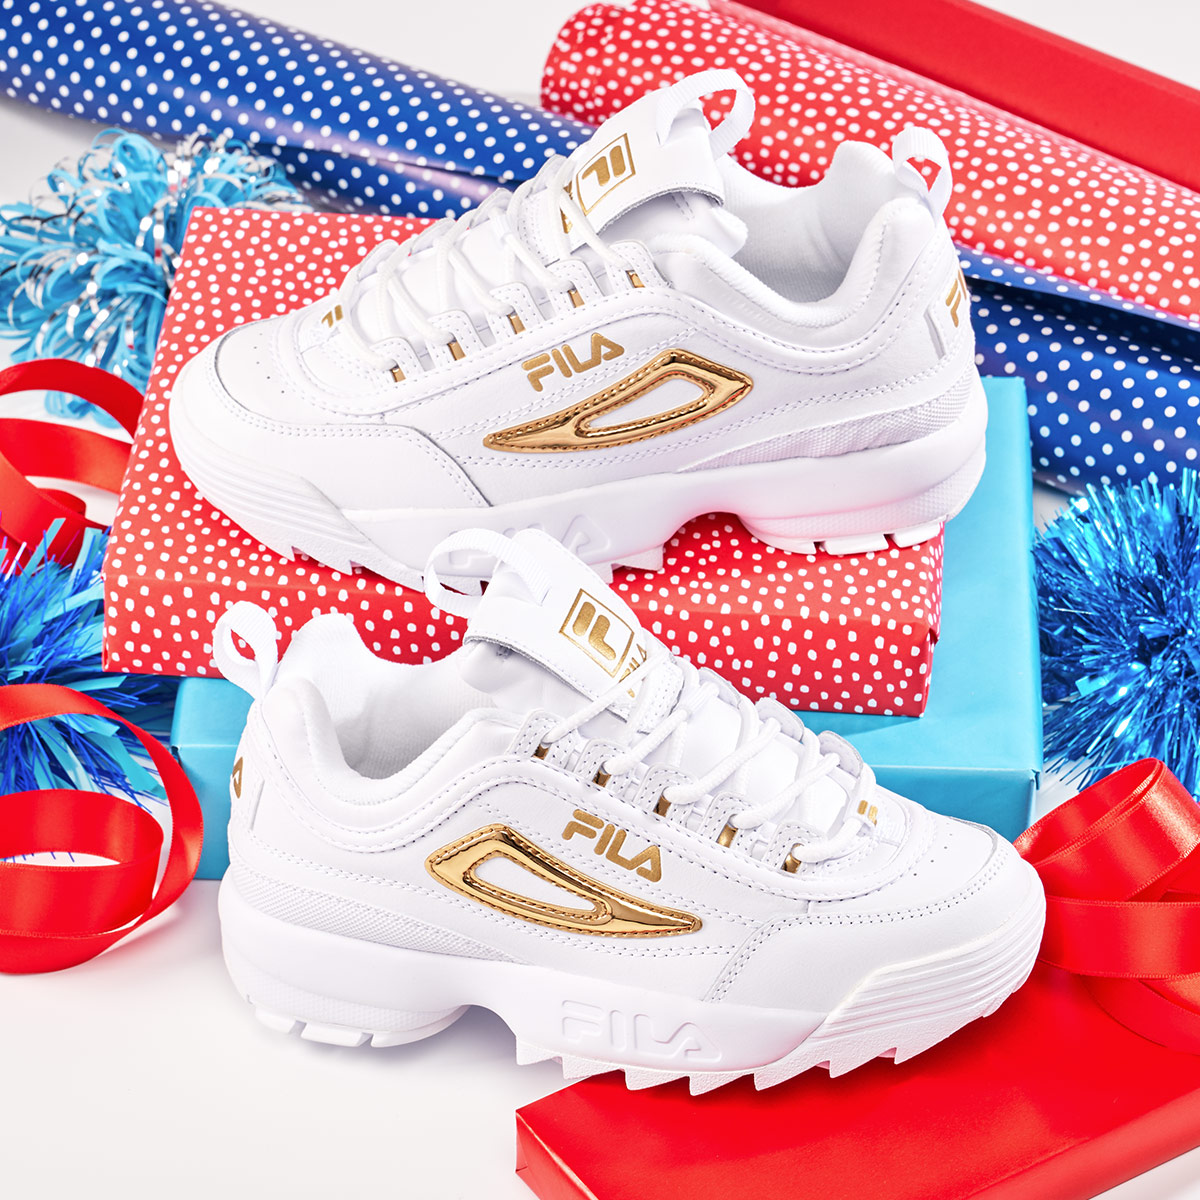 Pair of chunky Fila sneakers with flashy gold detail